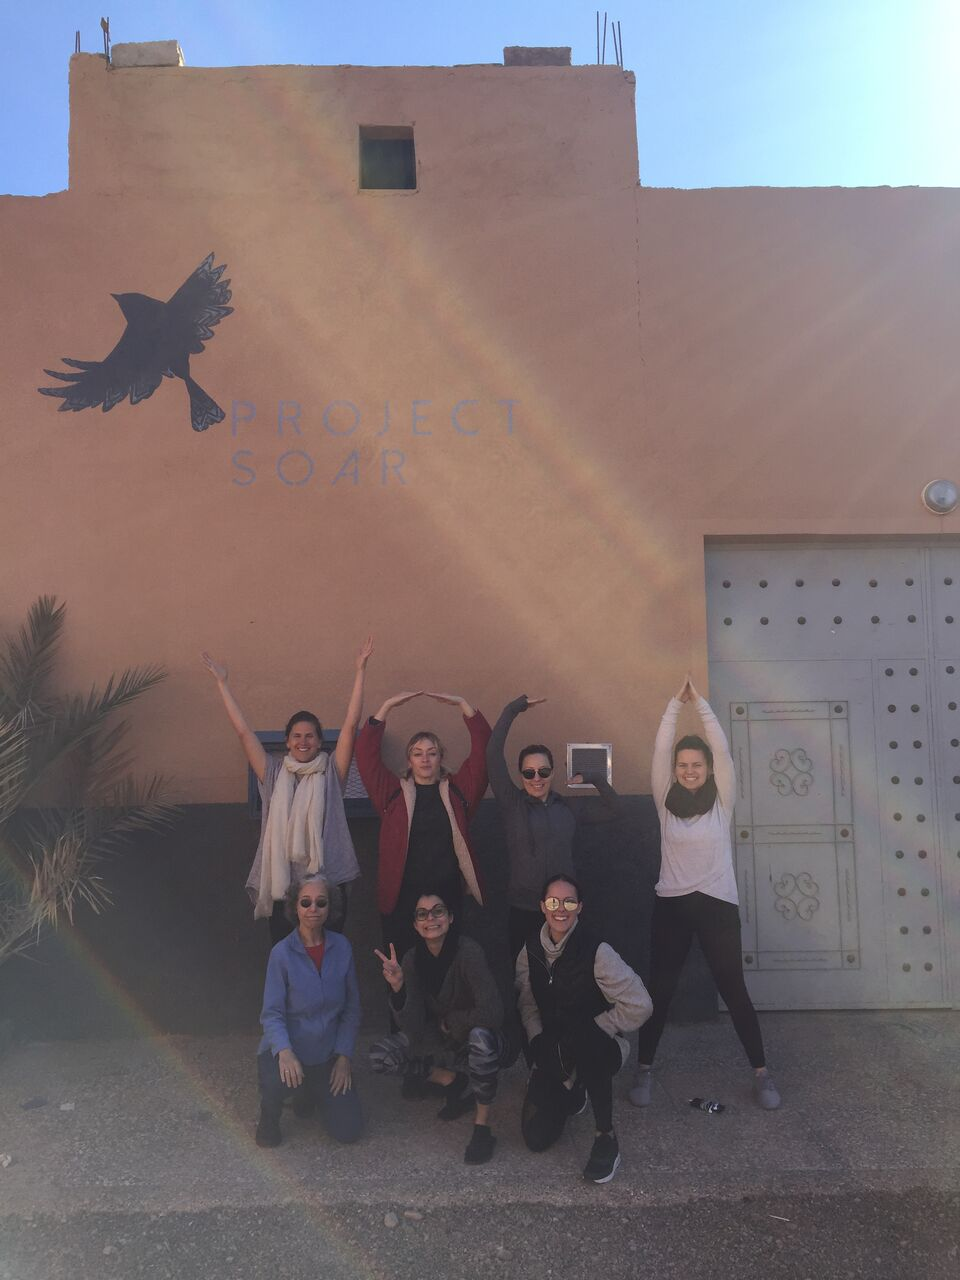 YOGA | Project Soar | give back | EAT.PRAY.MOVE Yoga Retreats | Marrakesh, Morocco